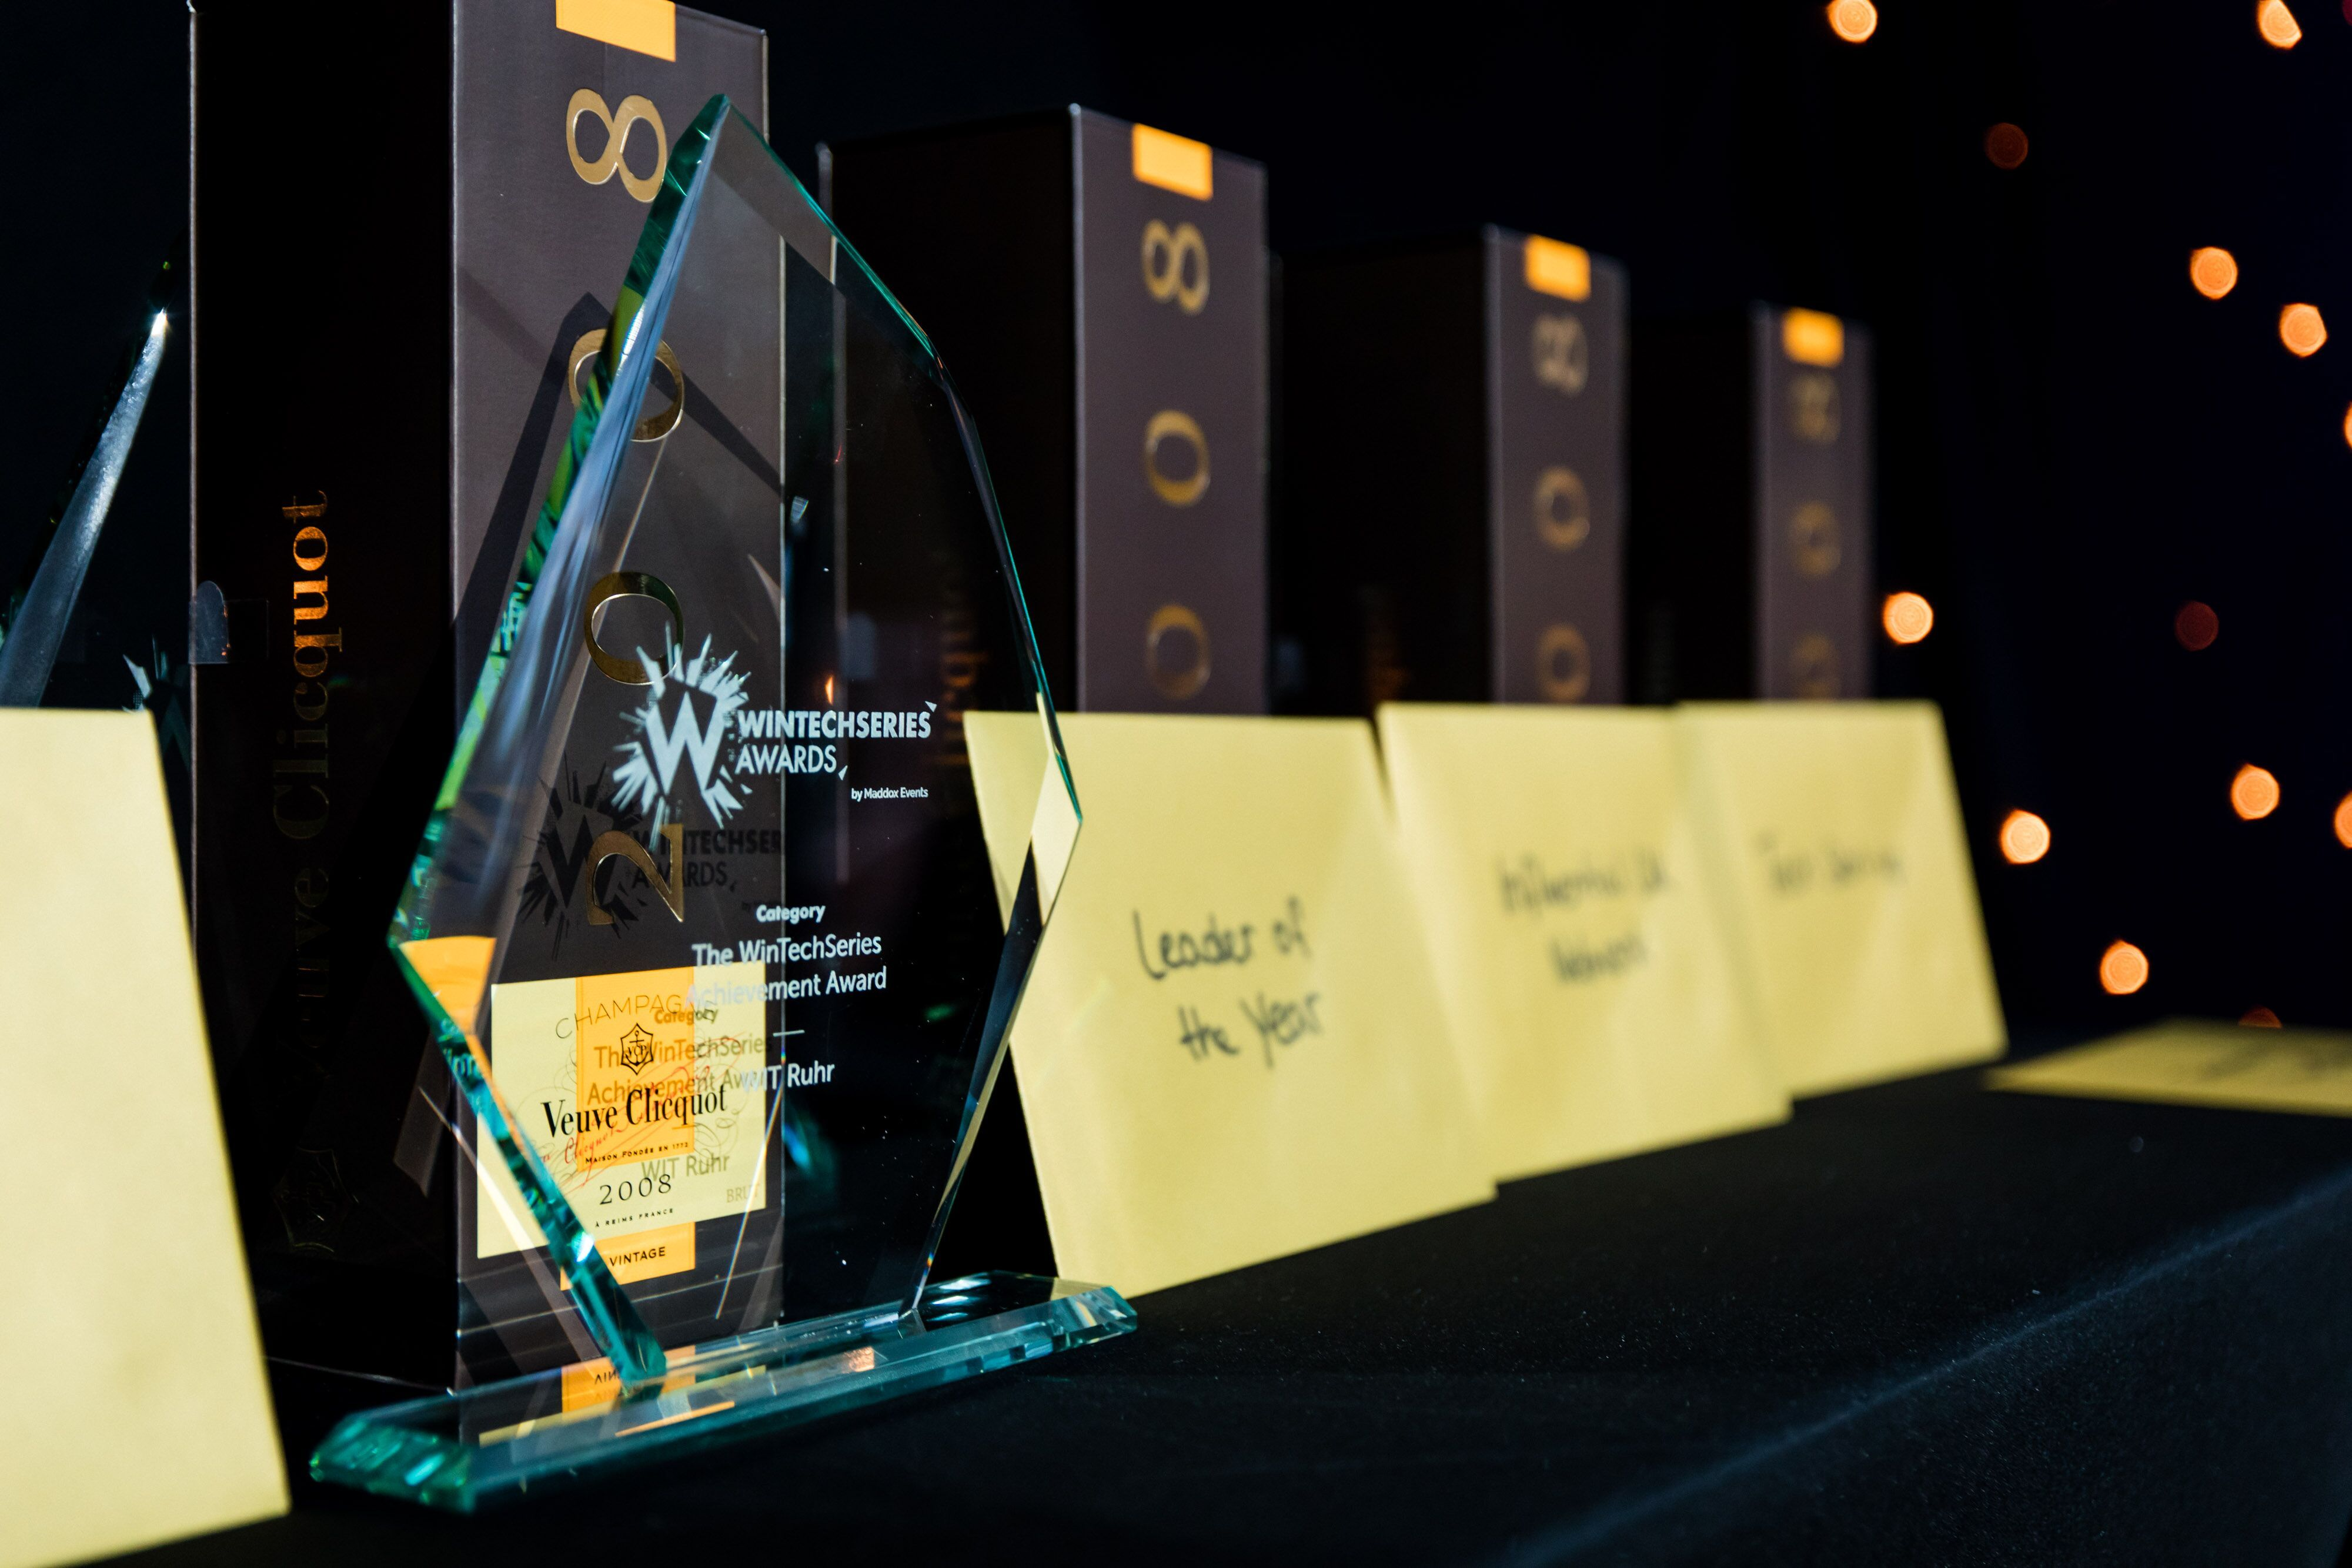 WinTechSeries Awards 2019: Shortlist Announced!